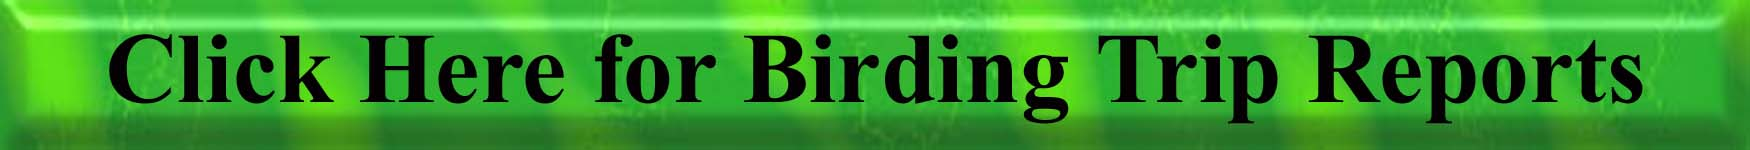 Click Here for the Birding Trip Reports